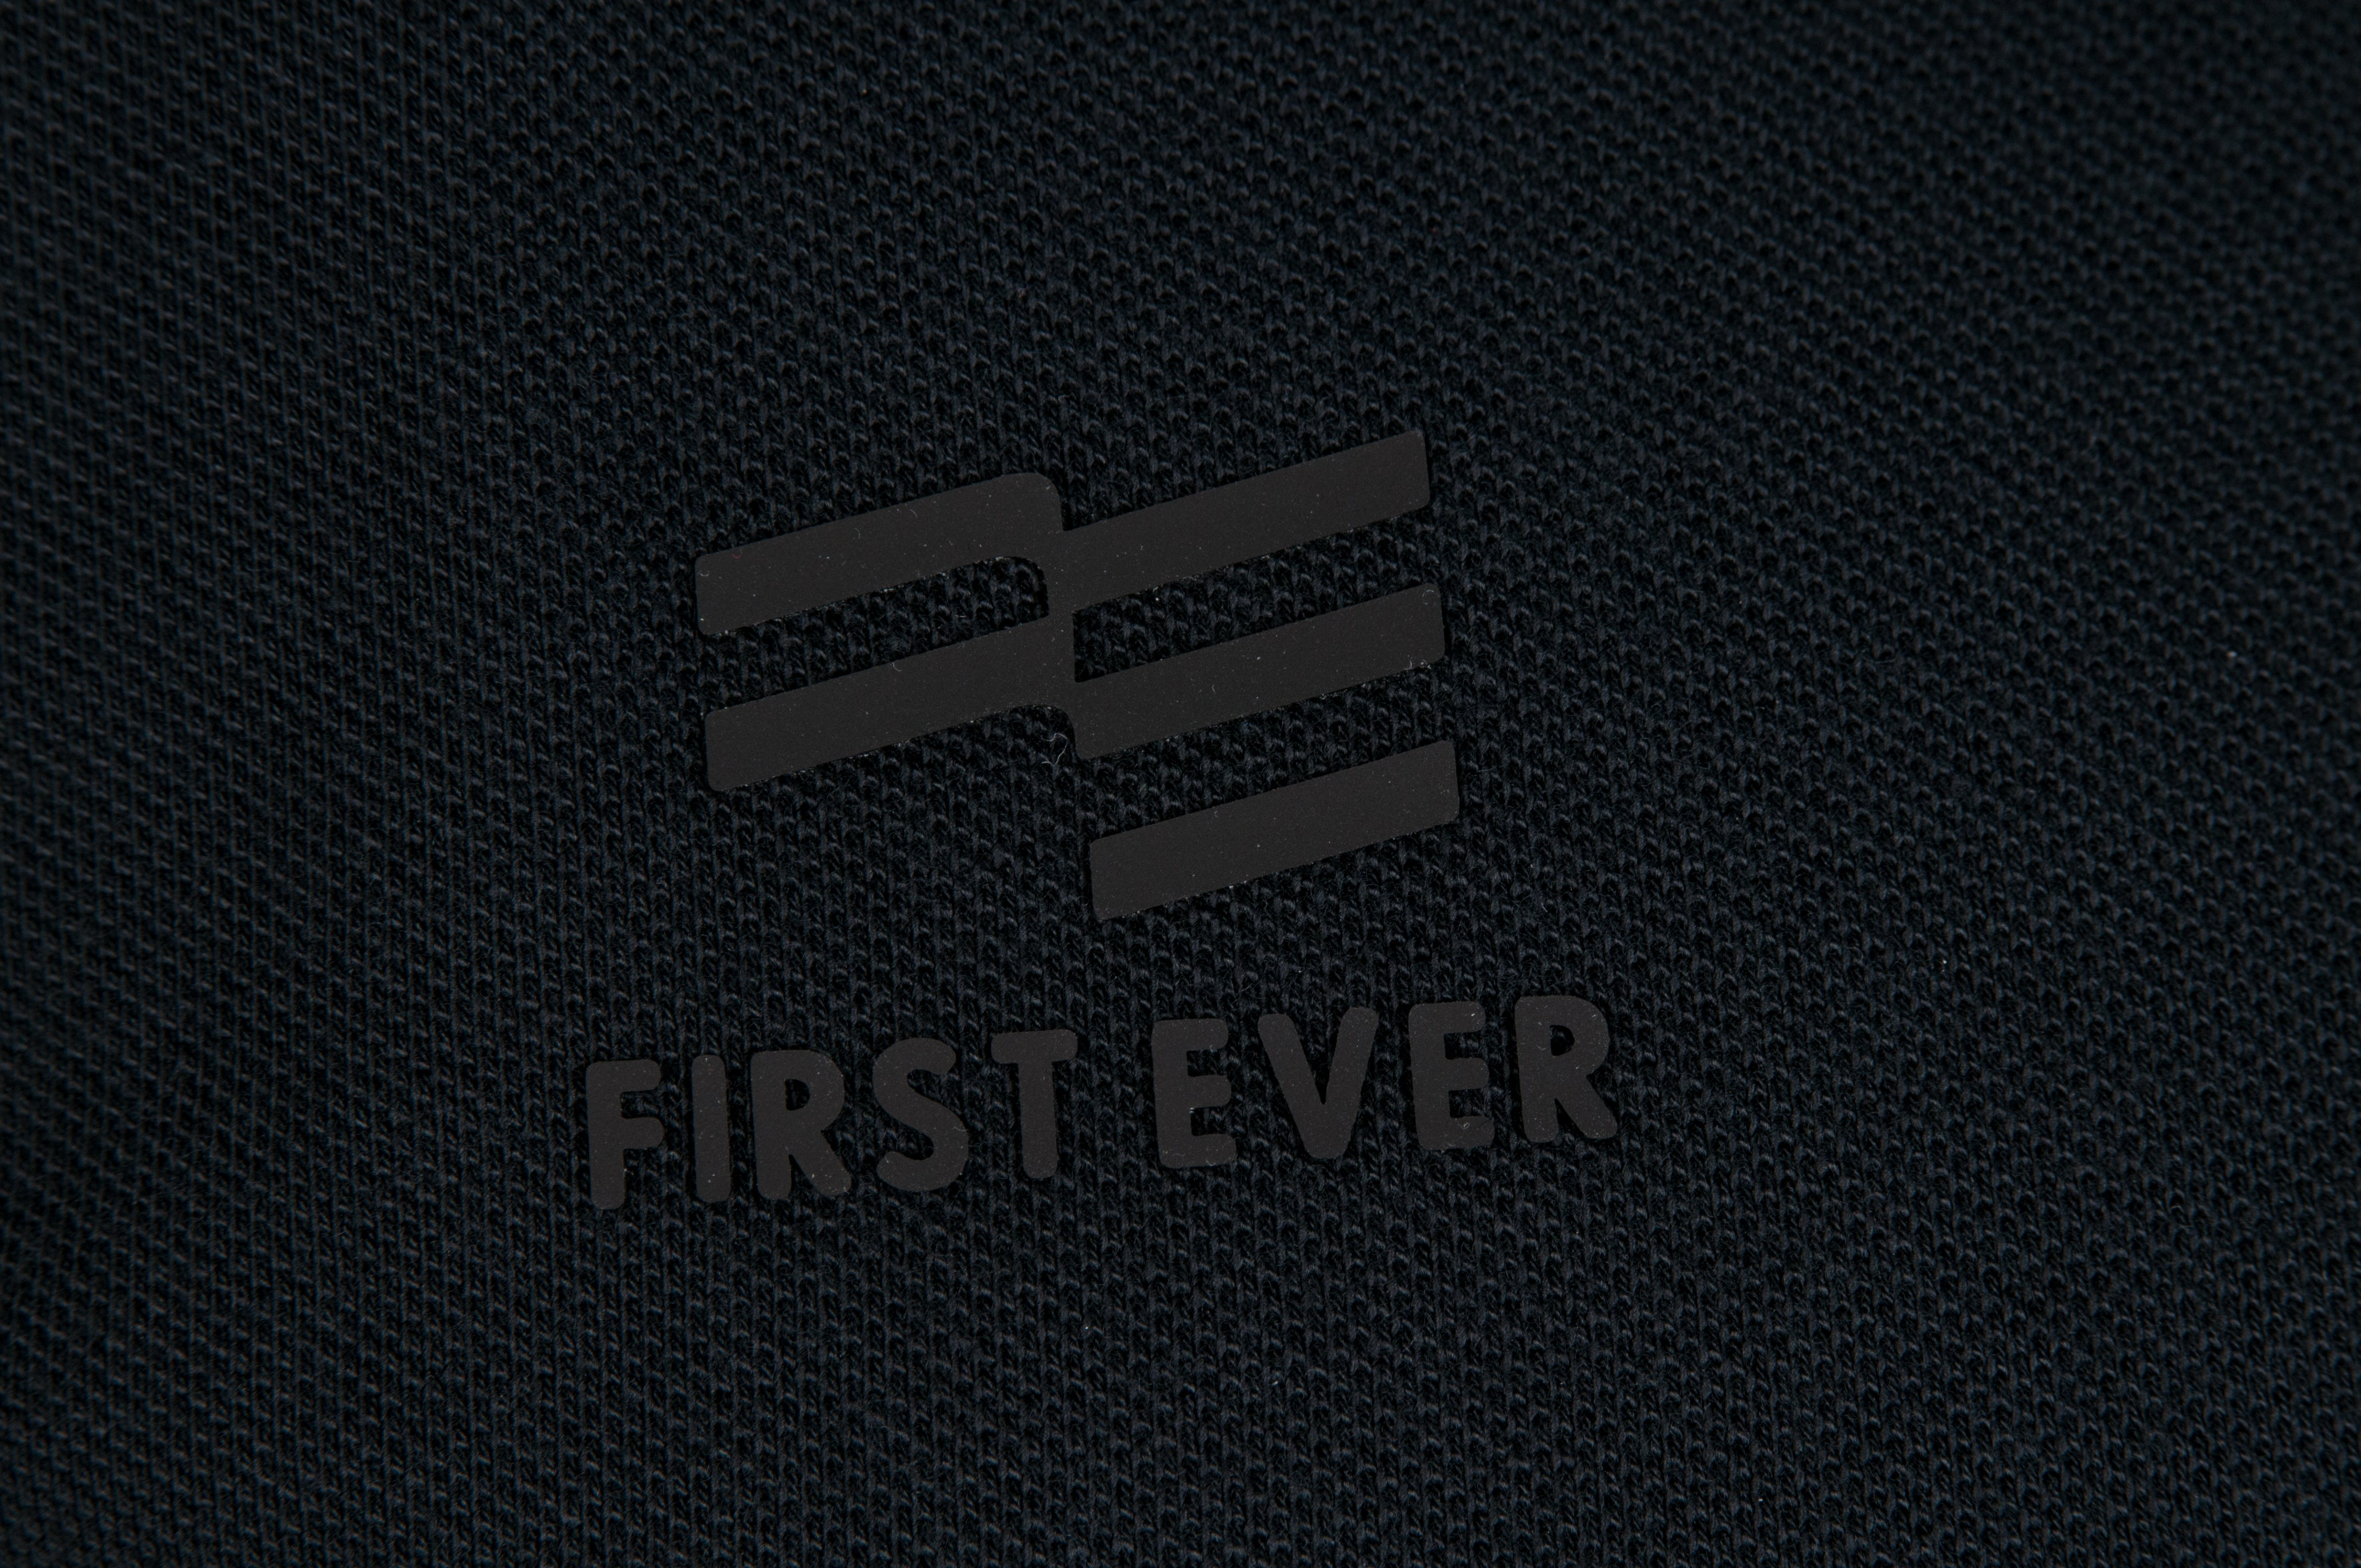 adelaide-36ers-lifestyle-polo - Detail Image 2